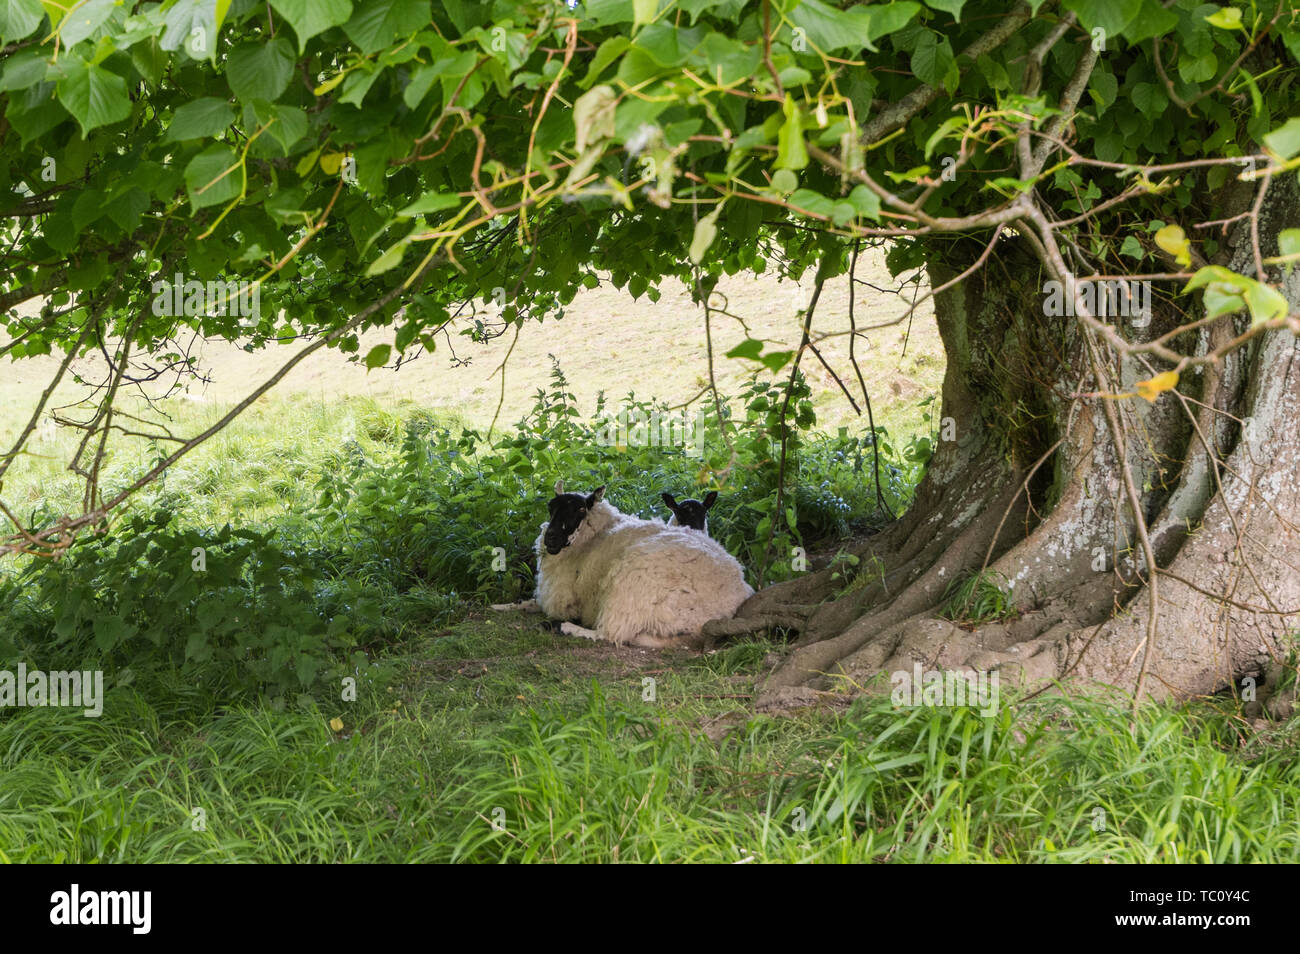 Sheep sitting on the ground taking shelter under a tree. Animal sheltering under a tree in England, UK. - Stock Image